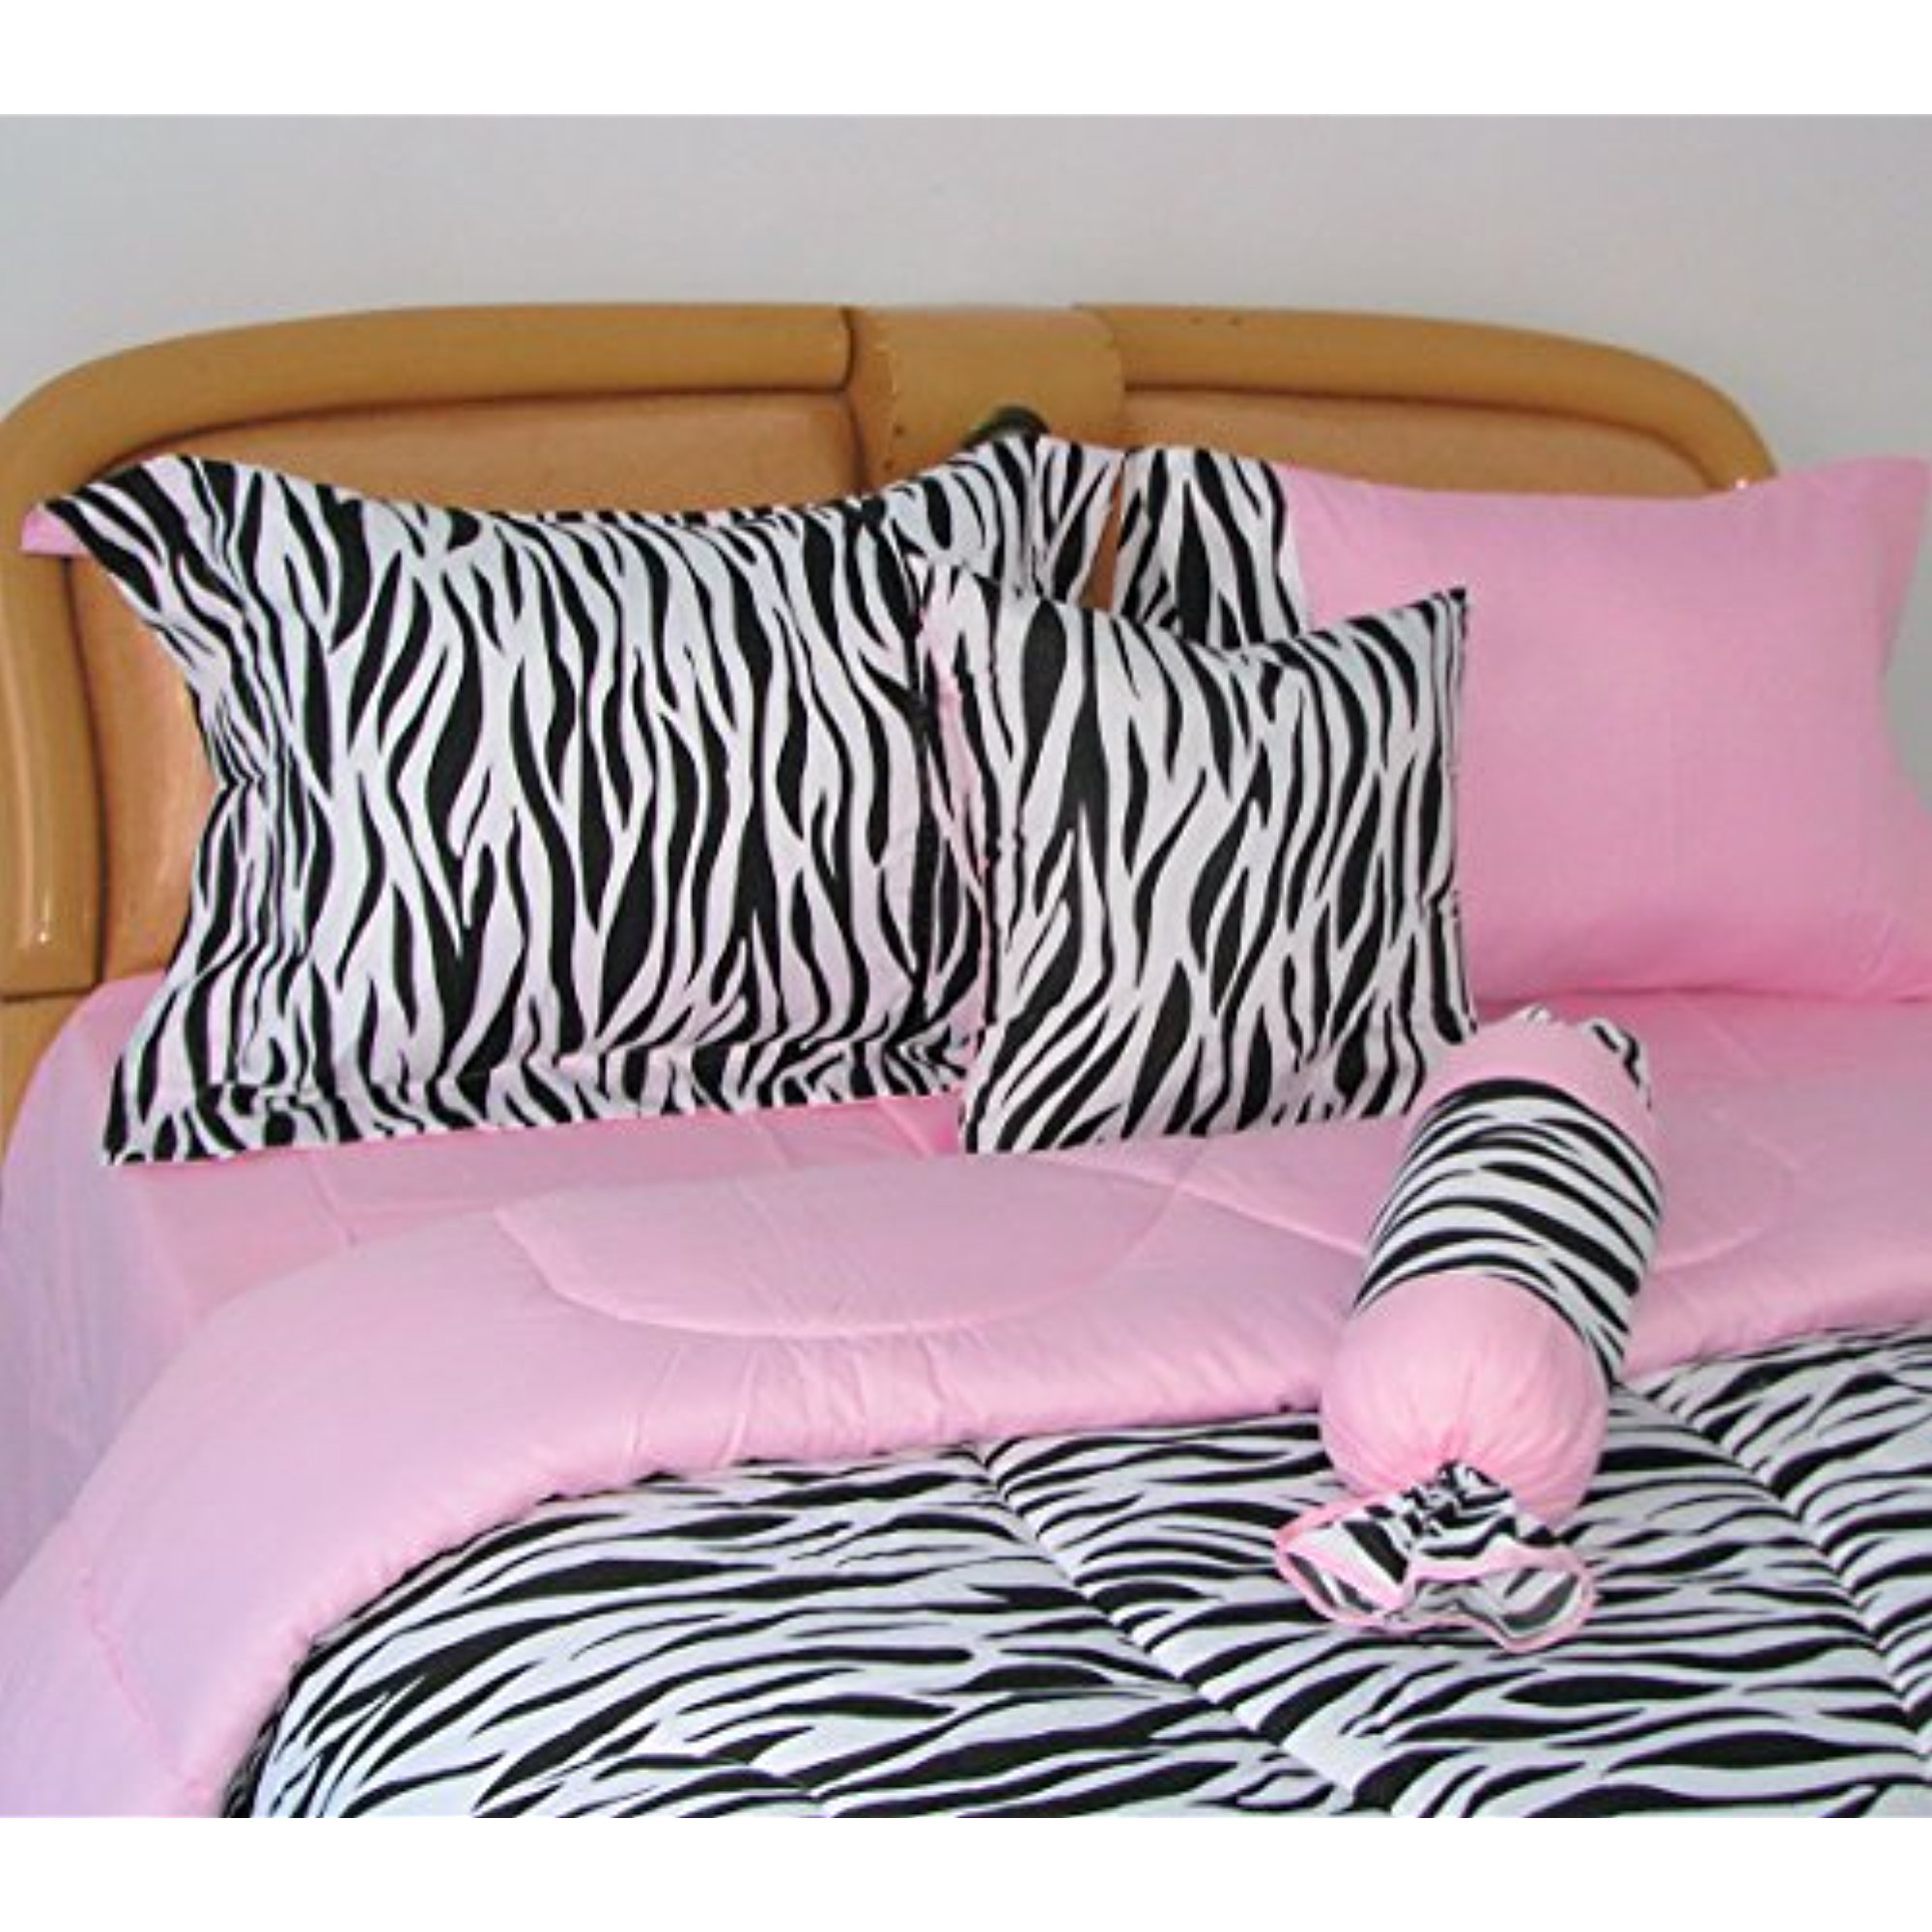 Faship Bed In A Bag Bedding Set 7 Pcs Zebra Print Queen